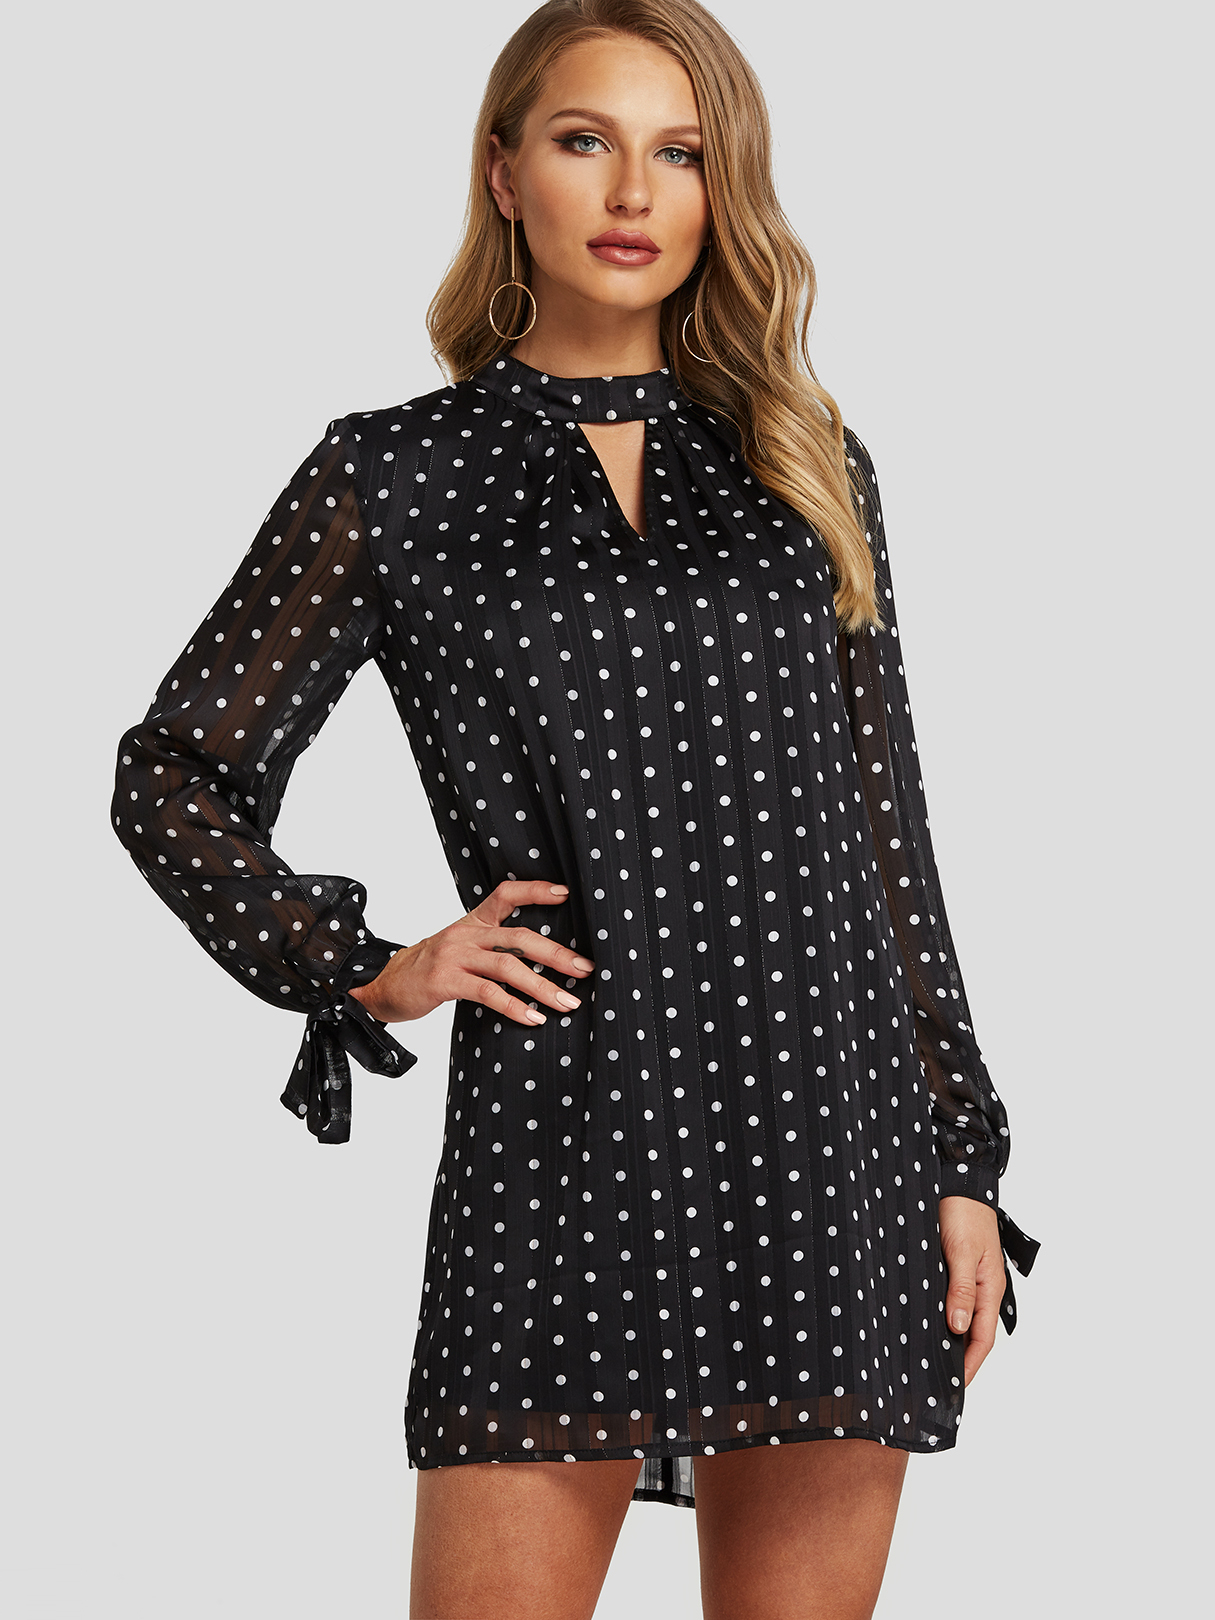 Black Cut Out Back Polka Dot Stand Collar Tie-up Sleeves Dress